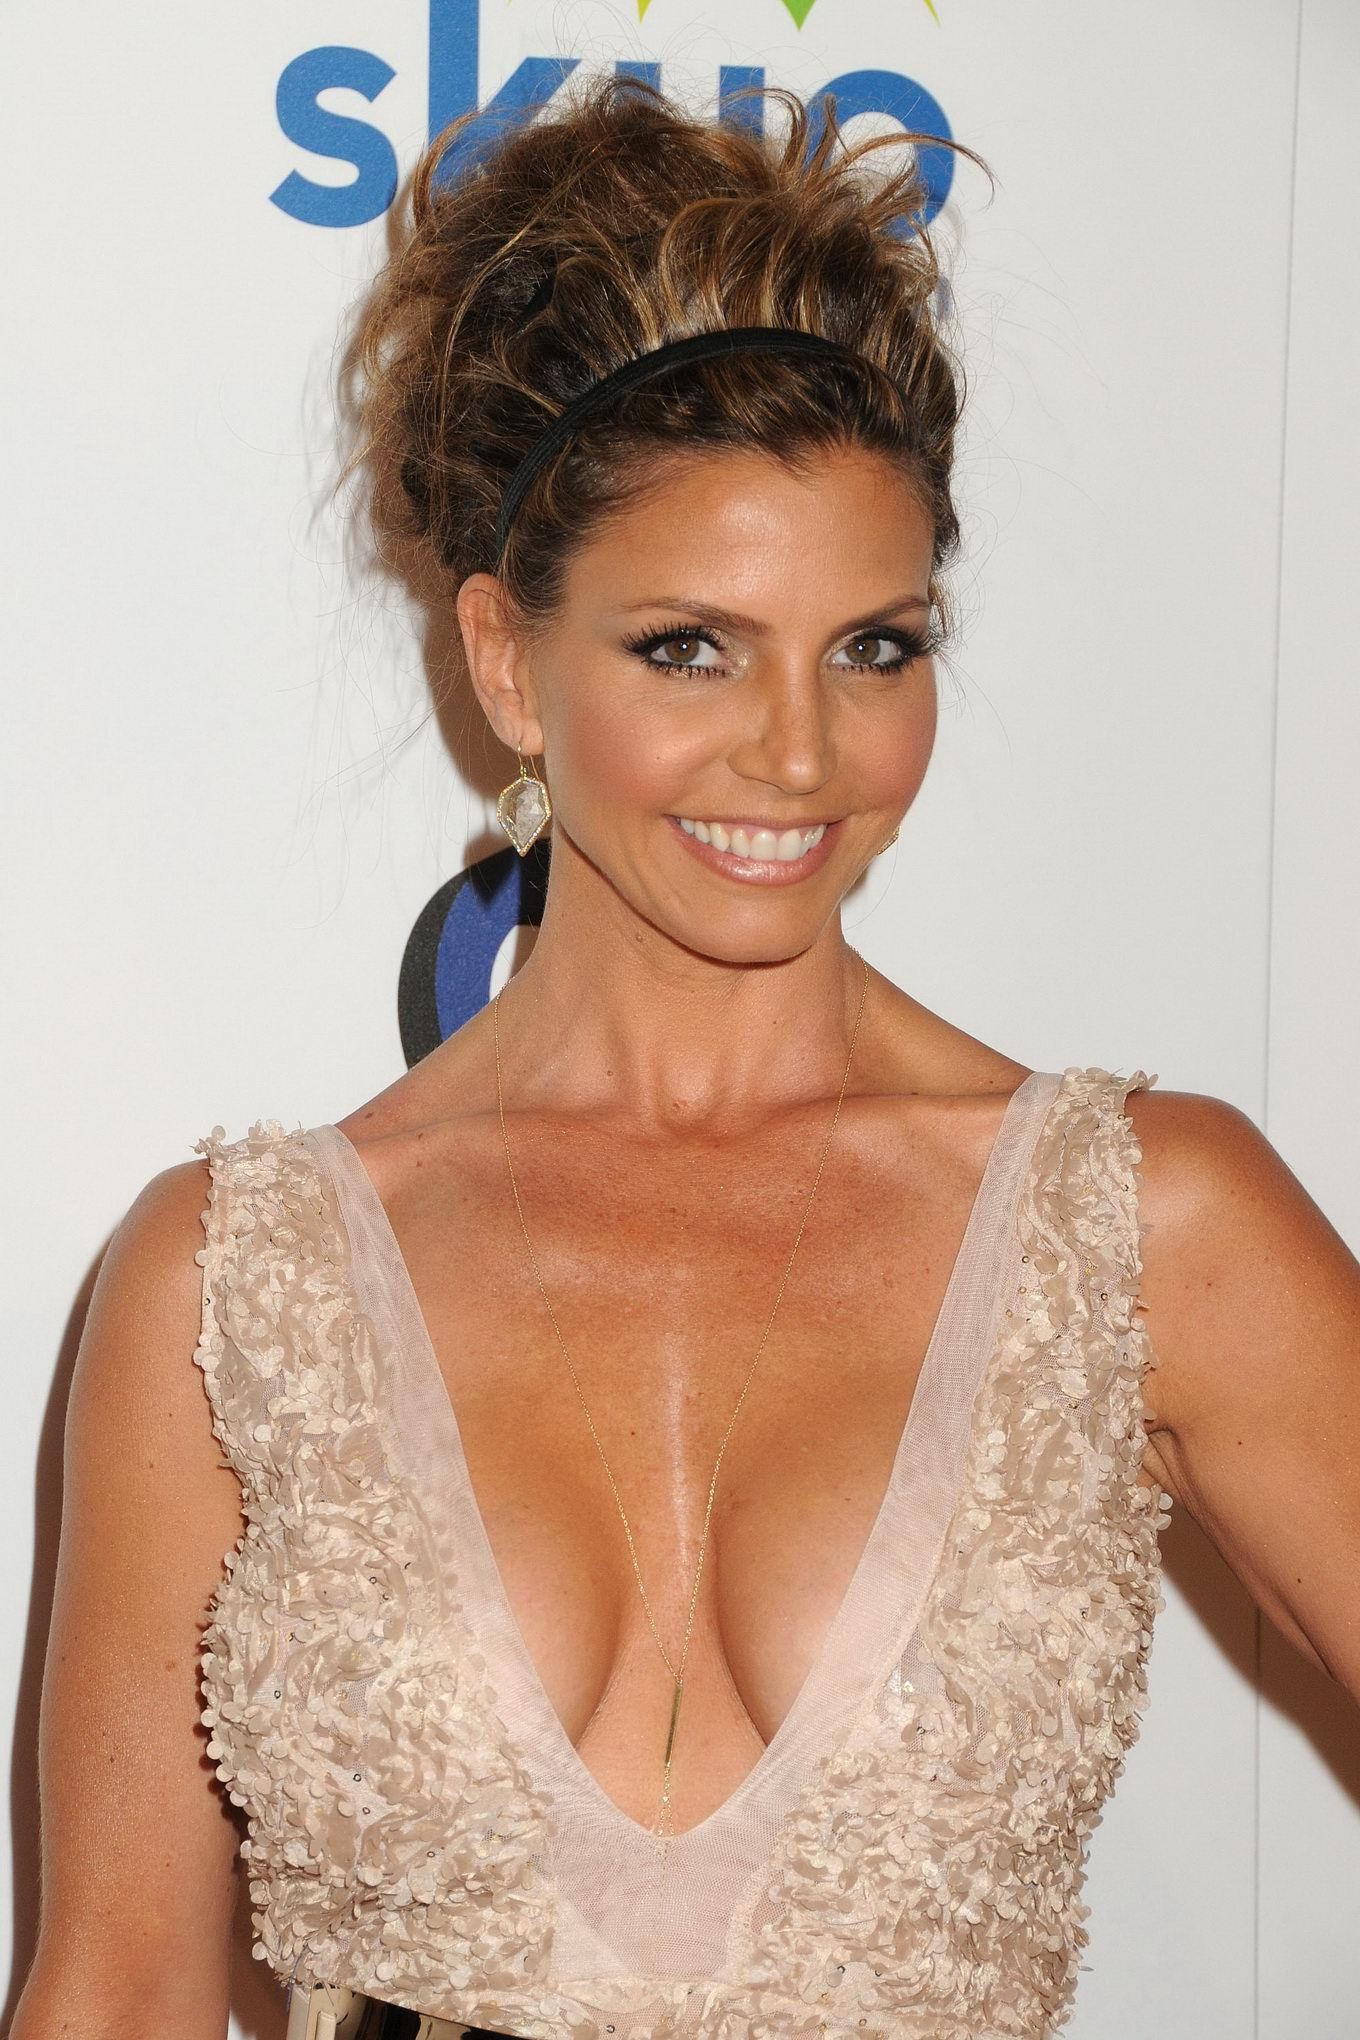 Something Charisma carpenter cleavage but not